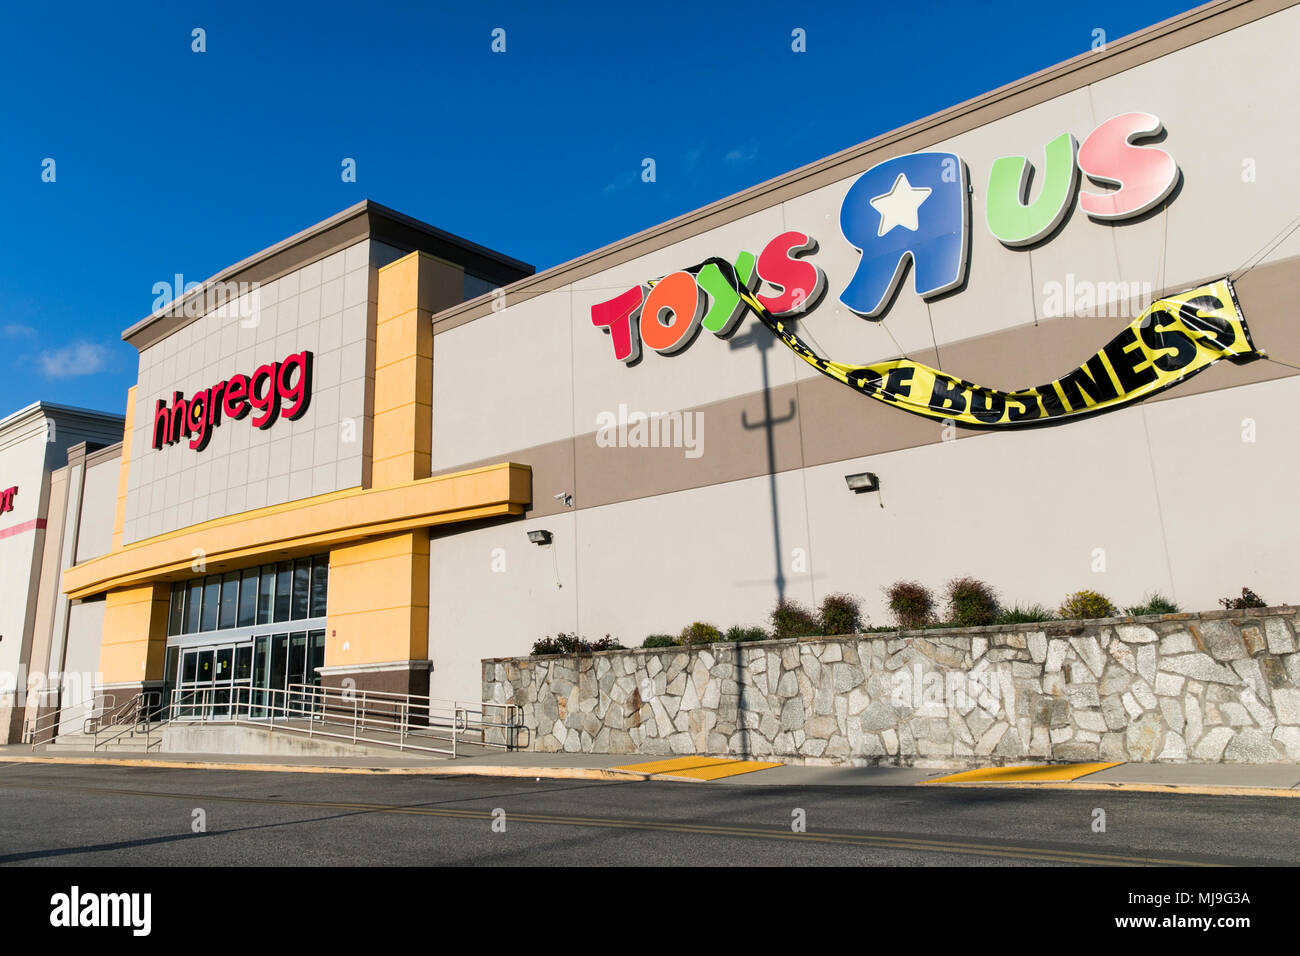 Hhgregg Toys R Us Stock Photos Amp Toys R Us Stock Images Alamy